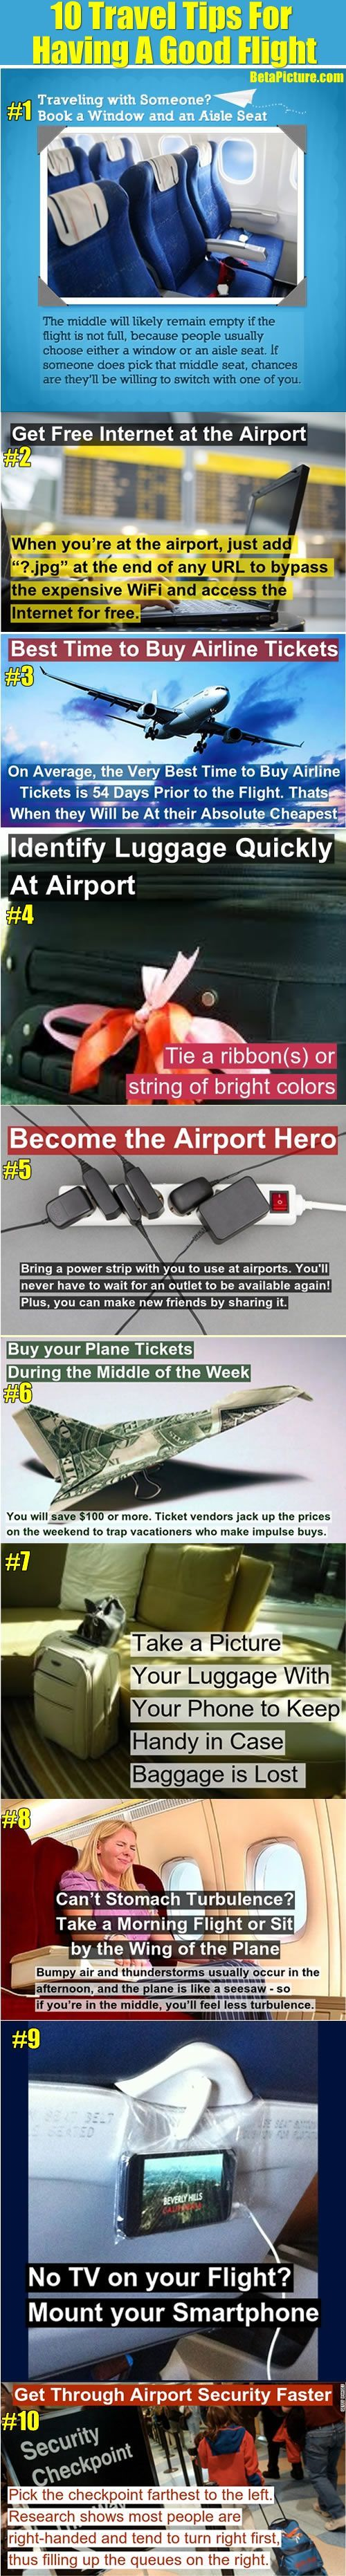 10 Travel Tips That You Must Know To Have   A Good Flight. Loving that power strip idea! Such a good idea!